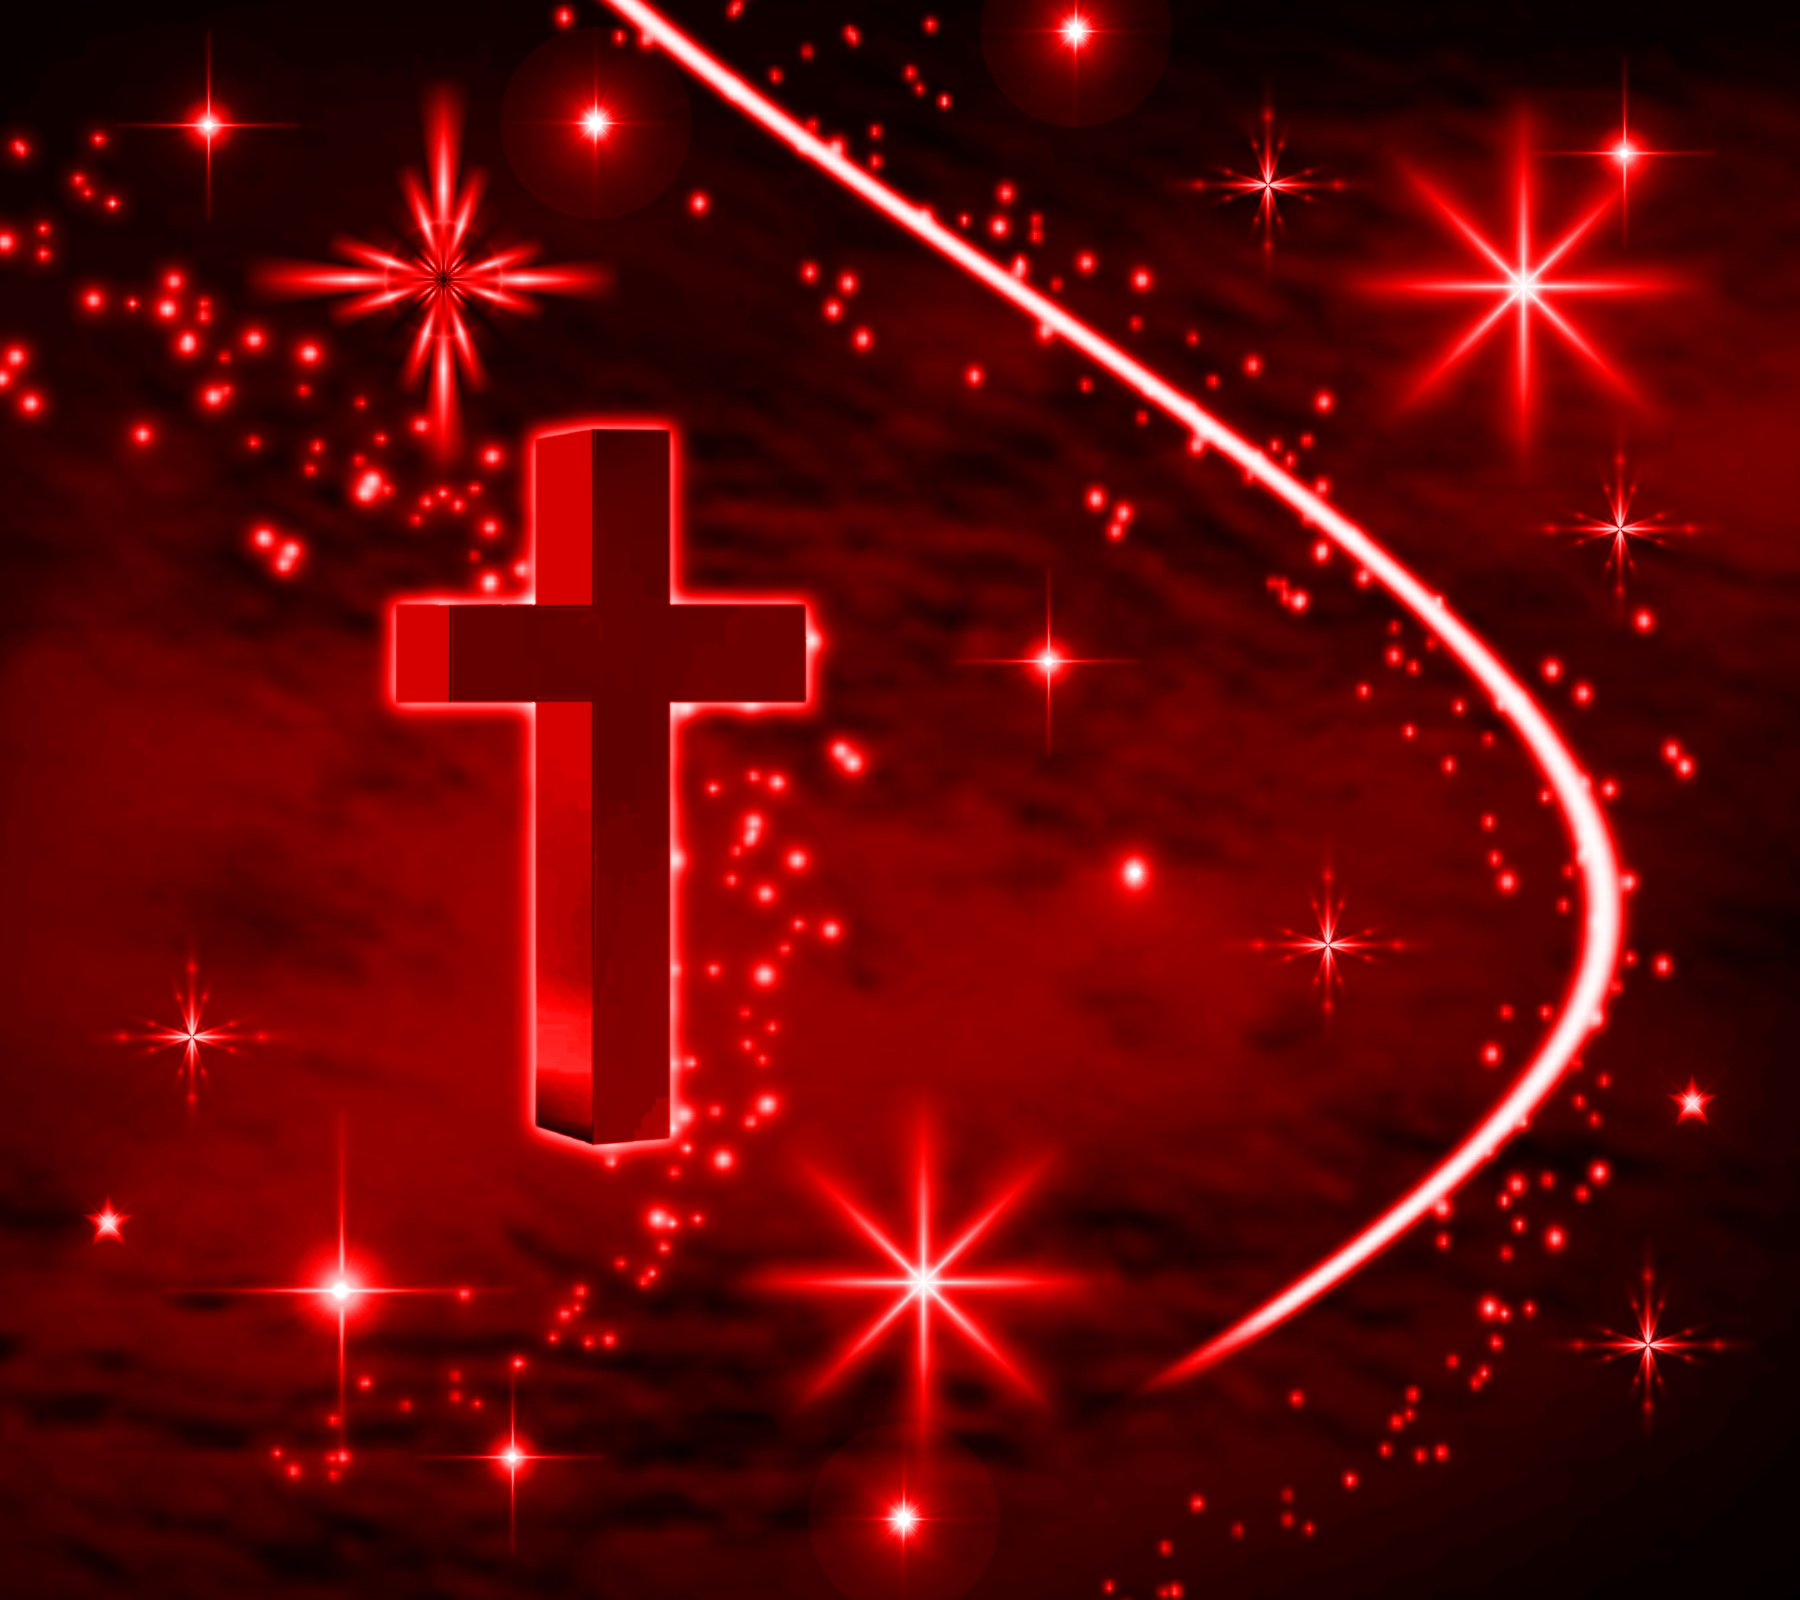 Cross Wallpapers Free: Red Cross With Stars Background 1800x1600 Background Image